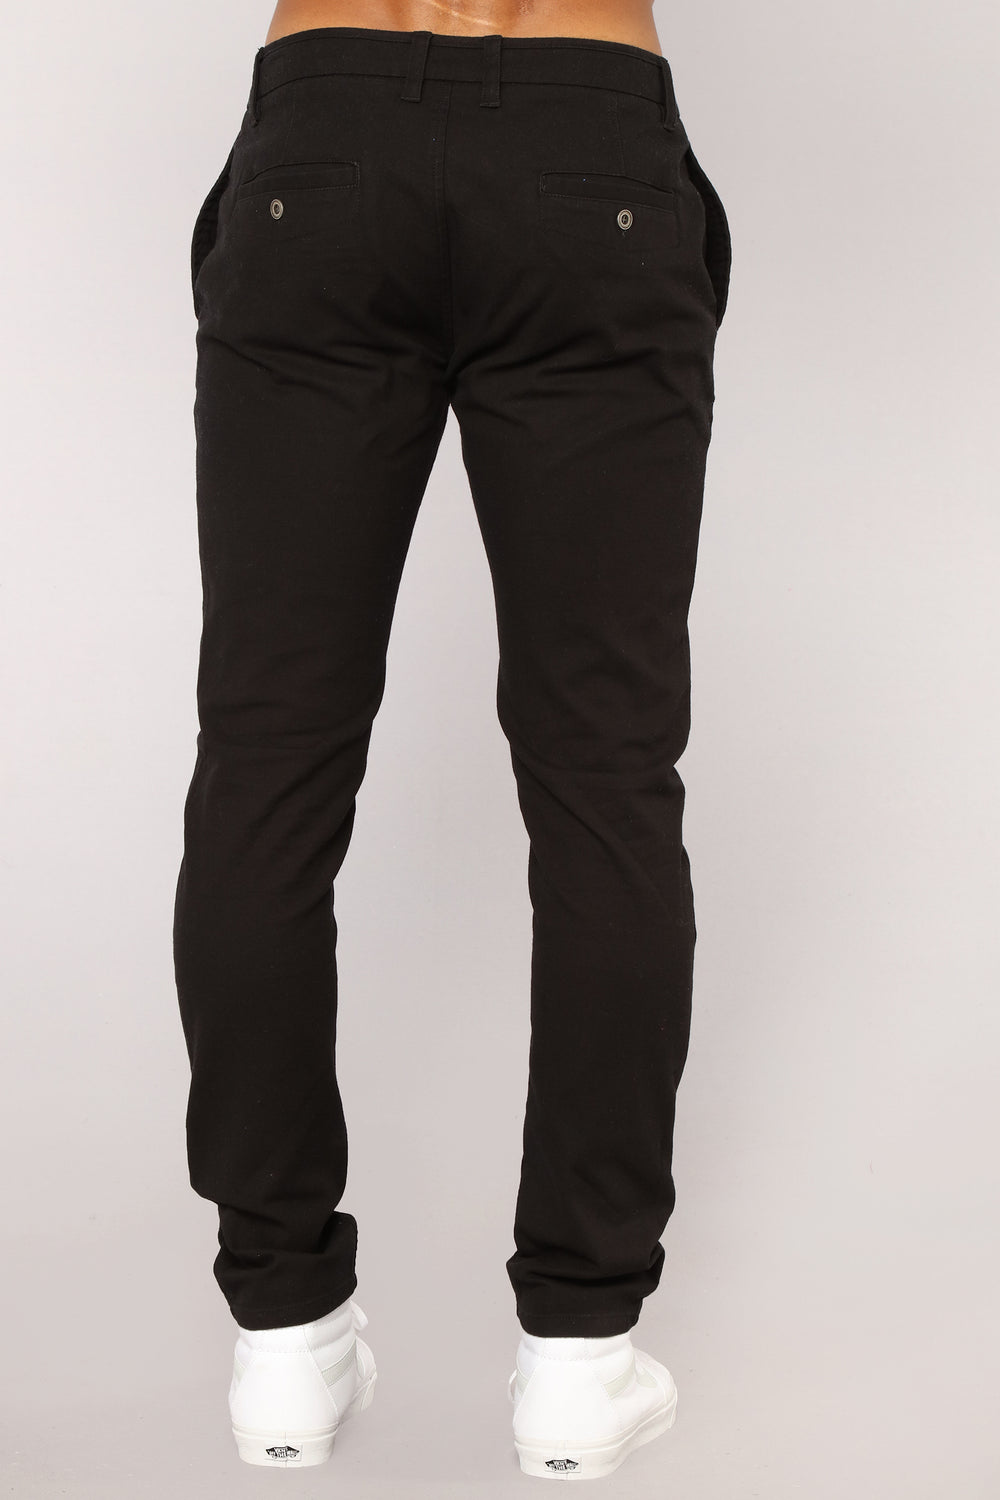 Gambino Chino Pants - Black